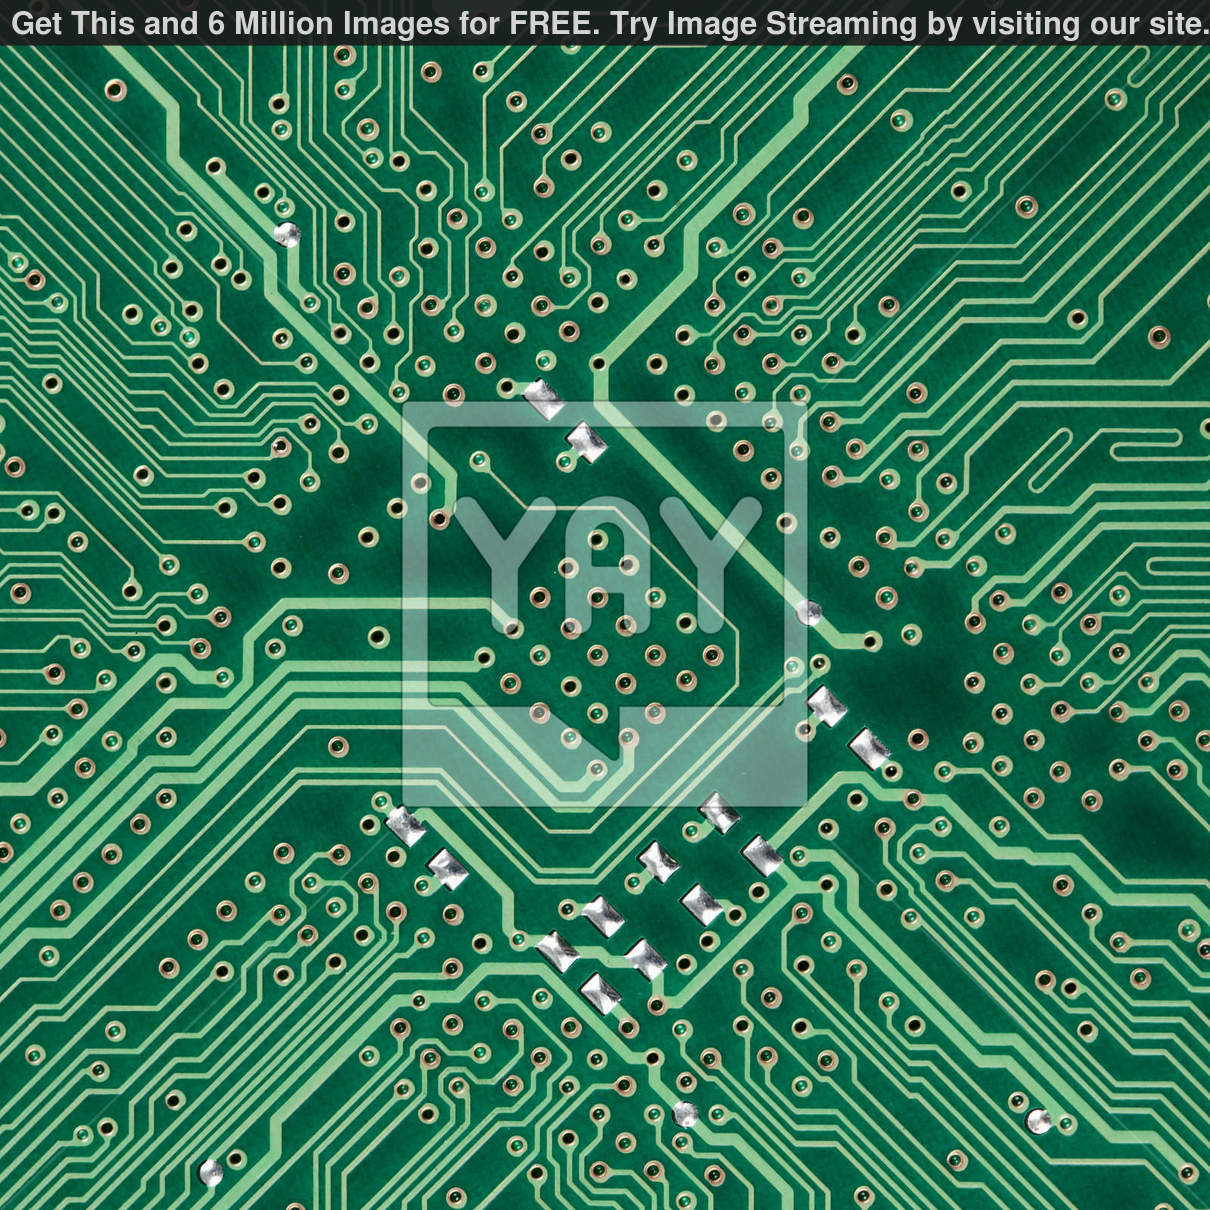 Printed Circuit Board Wallpaper - WallpaperSafari